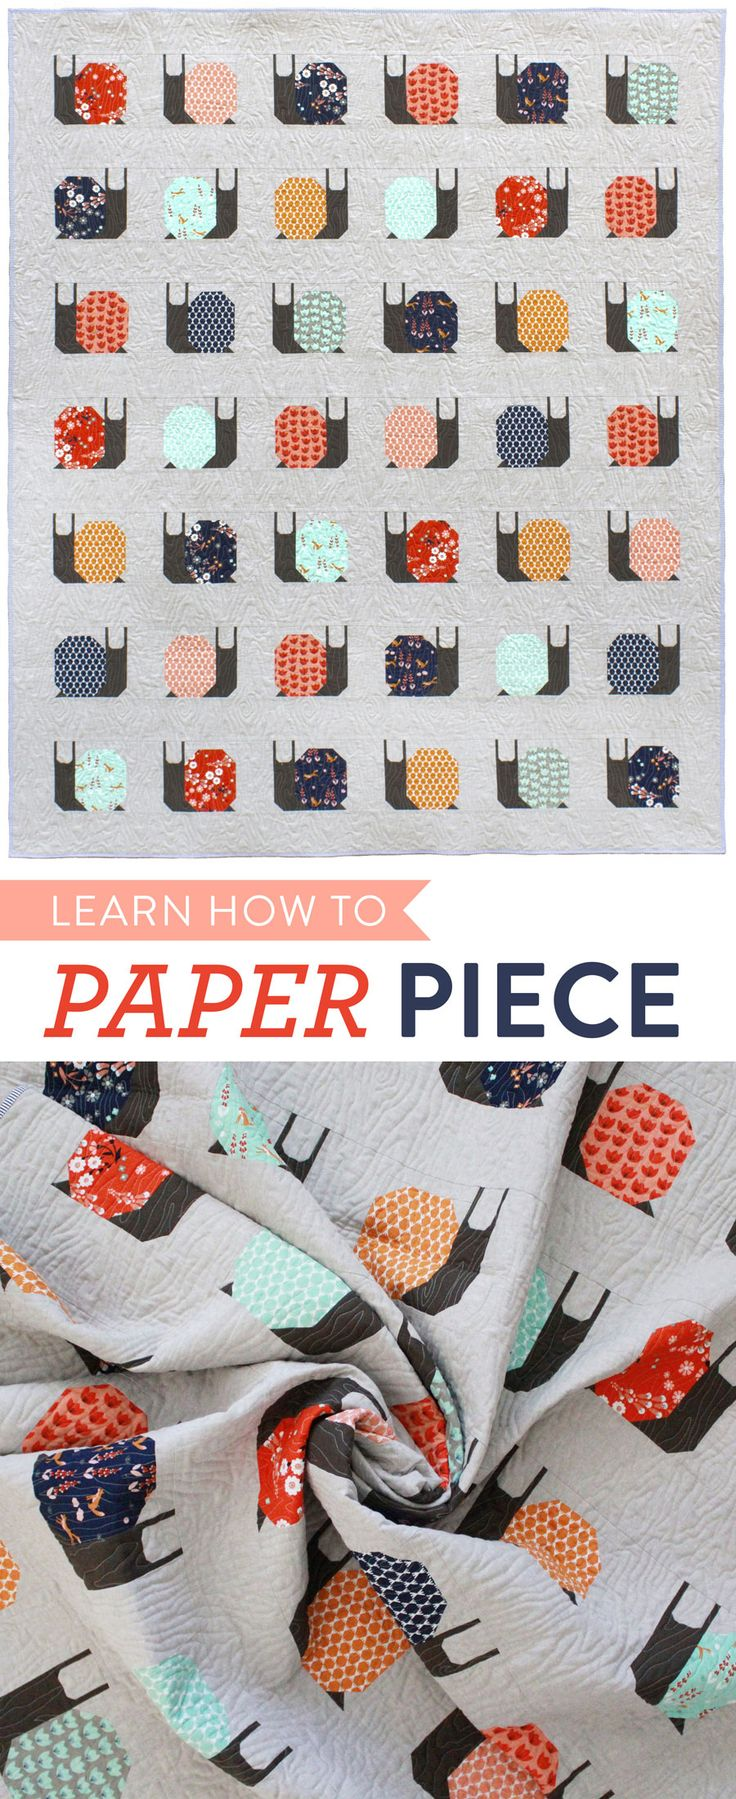 Learn-How-to-Paper-Piece like a pro! Tips, Tricks, Supplies and a video tutorial!